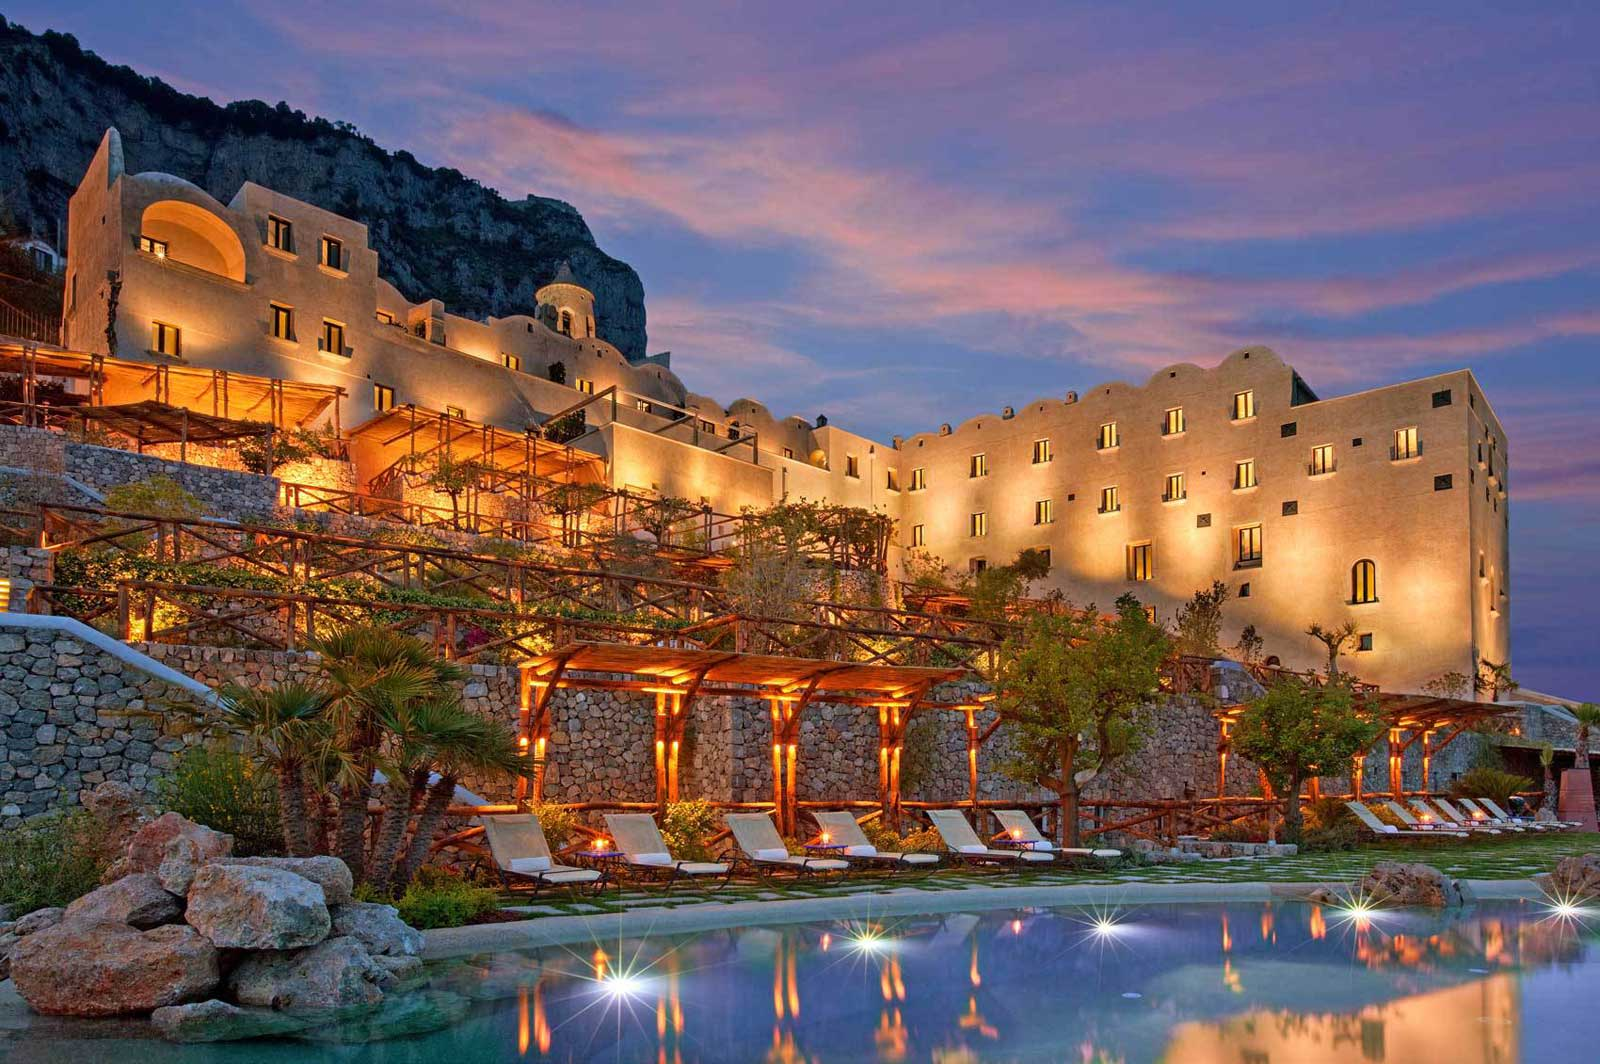 Monastero Santa Rosa, Luxury hotel on the Amalfi Coast (Conca dei Marini)